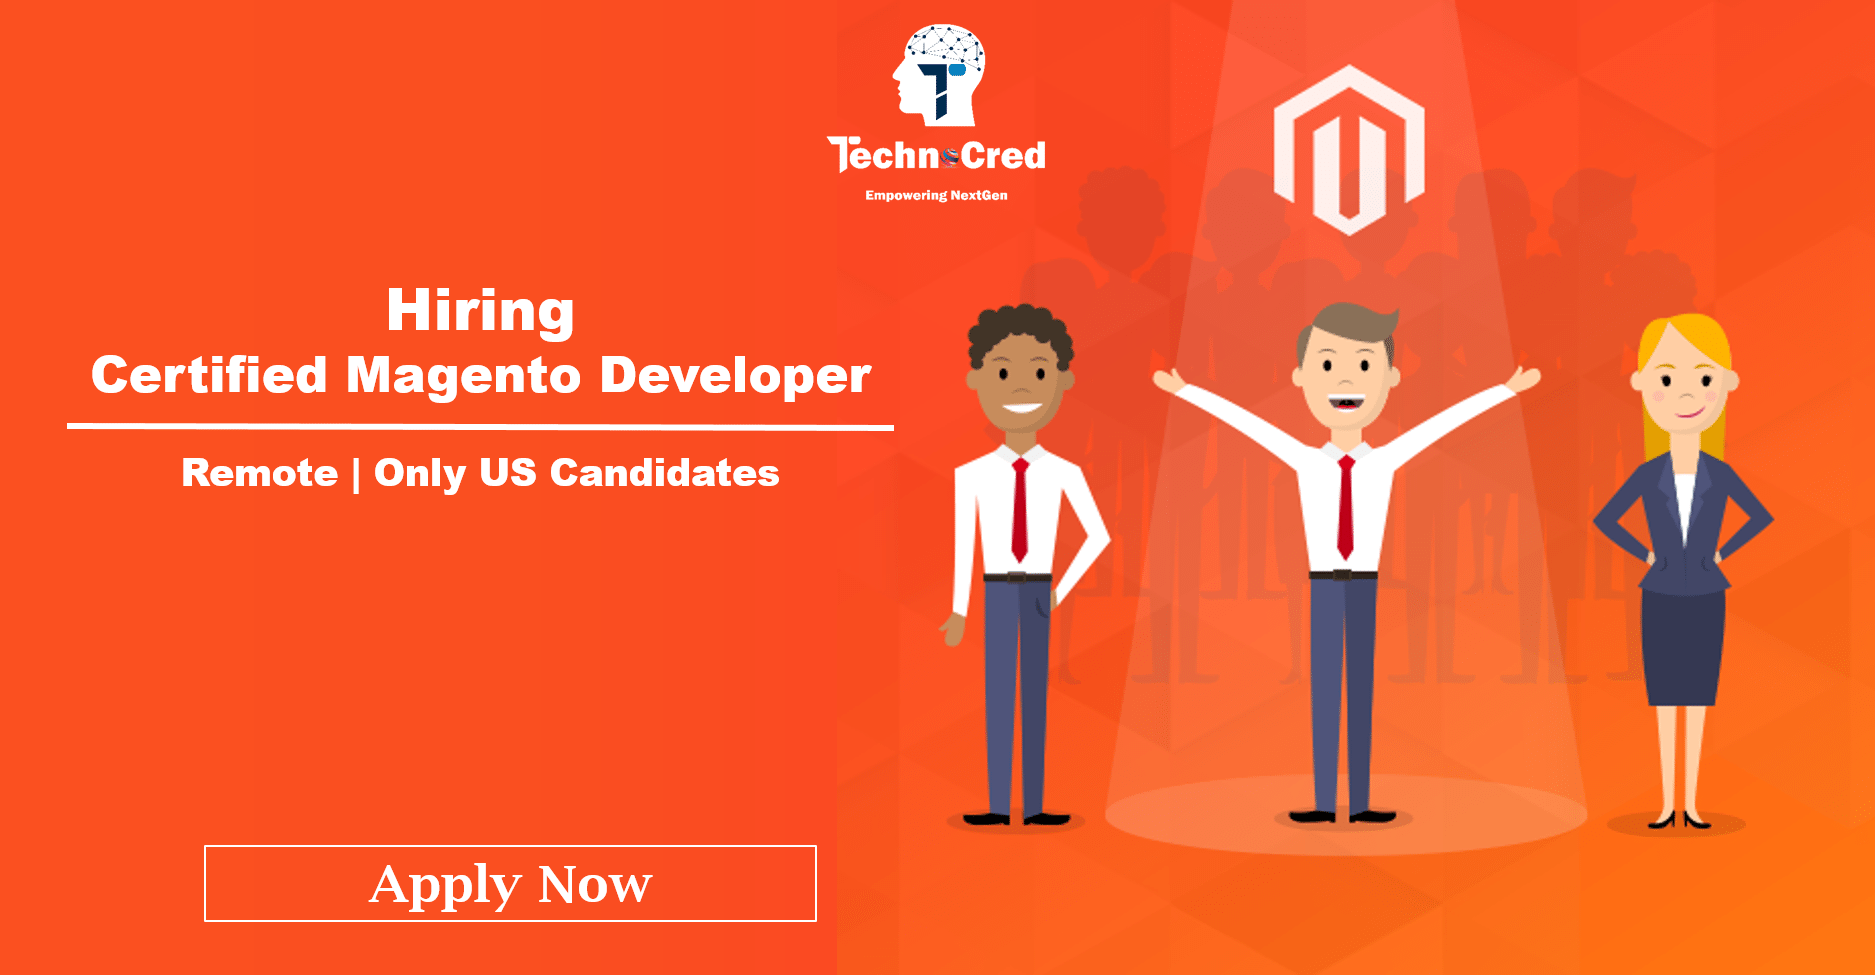 Hiring Certified Magento Developer (Remote- only for US candidates)